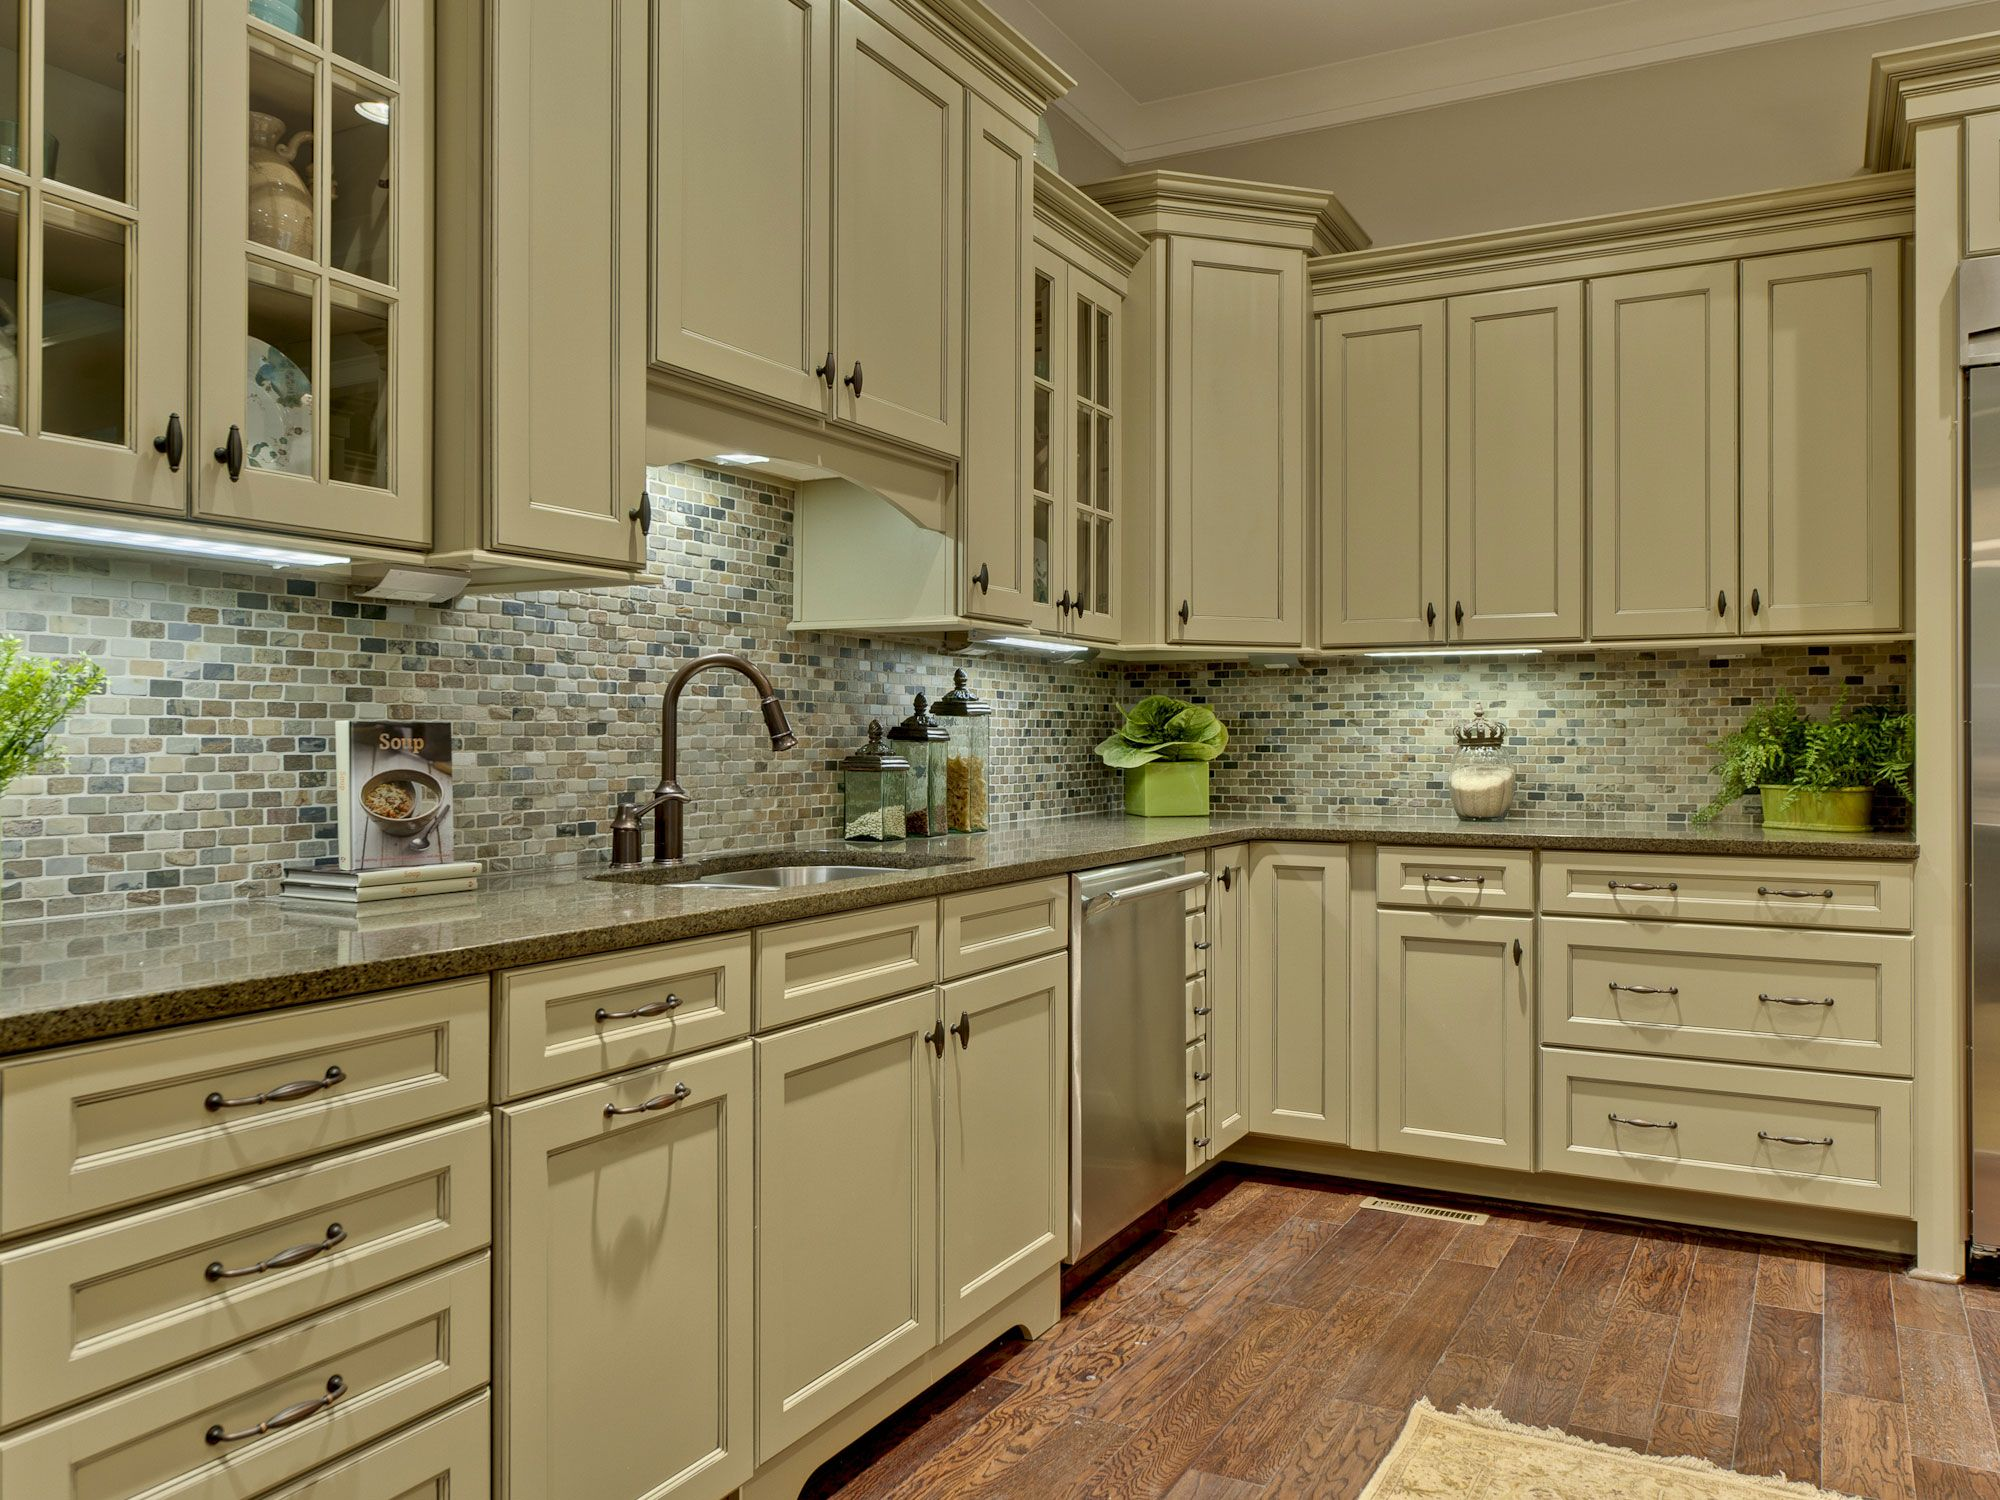 Amazing Refinished Green Kitchen To White Painted